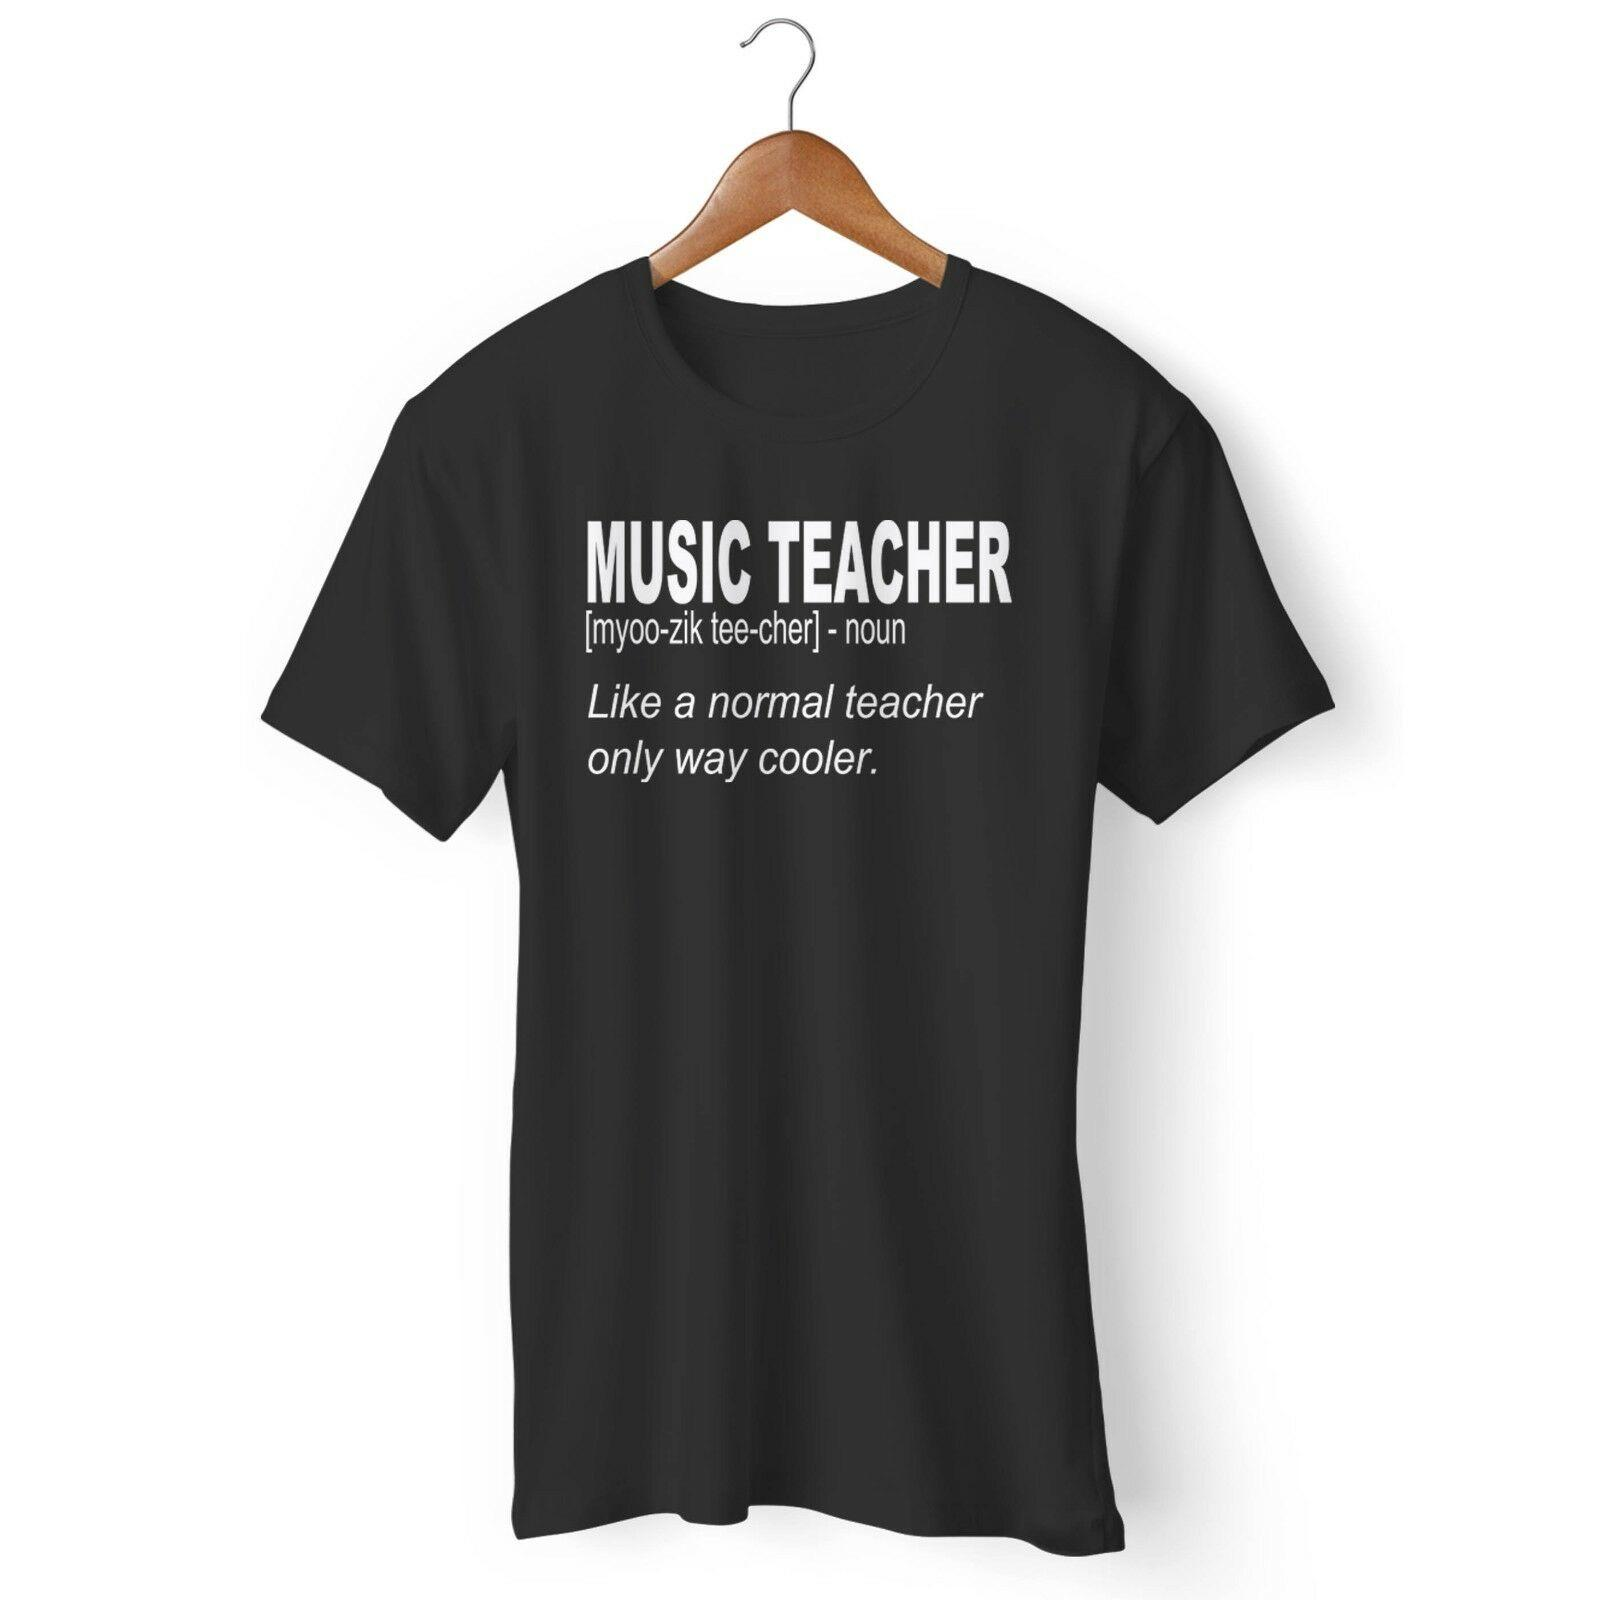 450d86b84c7f Music Teacher School Teacher End Of School Man's and Woman's T-Shirt  Harajuku Summer 2018 Tshirt Tees Custom Jersey t shirt